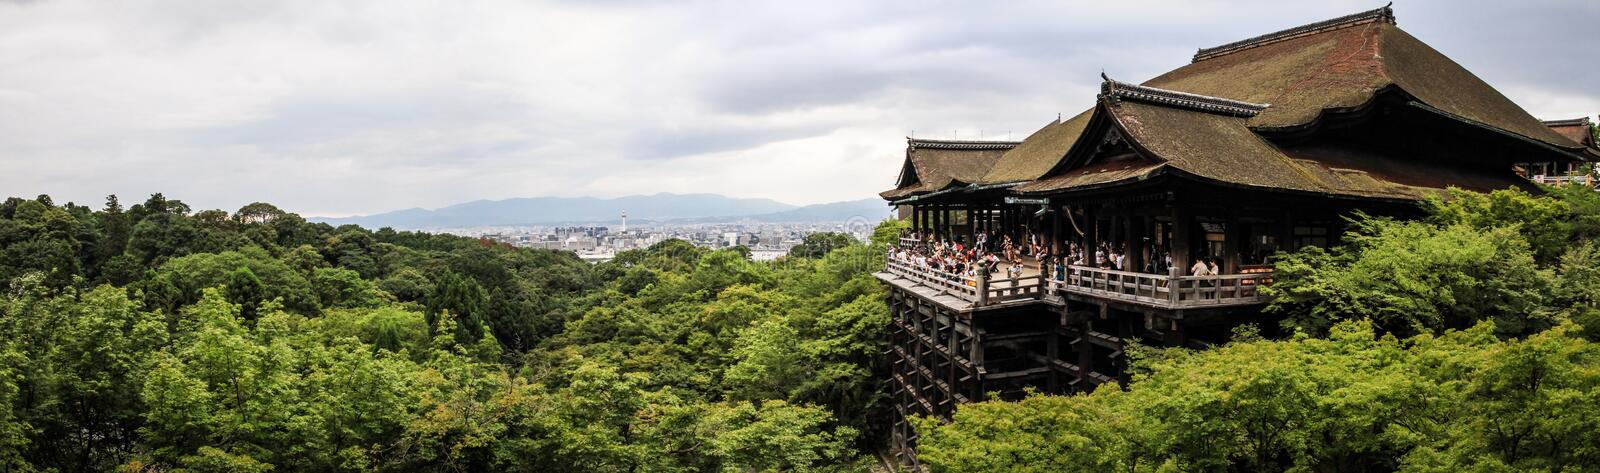 Kiyomizu-dera panoramic view, officially Otowa-san Kiyomizu-dera, Higashiyama-ku, Kyoto, kansai, Japan. Kiyomizu-dera, officially Otowa-san Kiyomizu-dera is an stock images